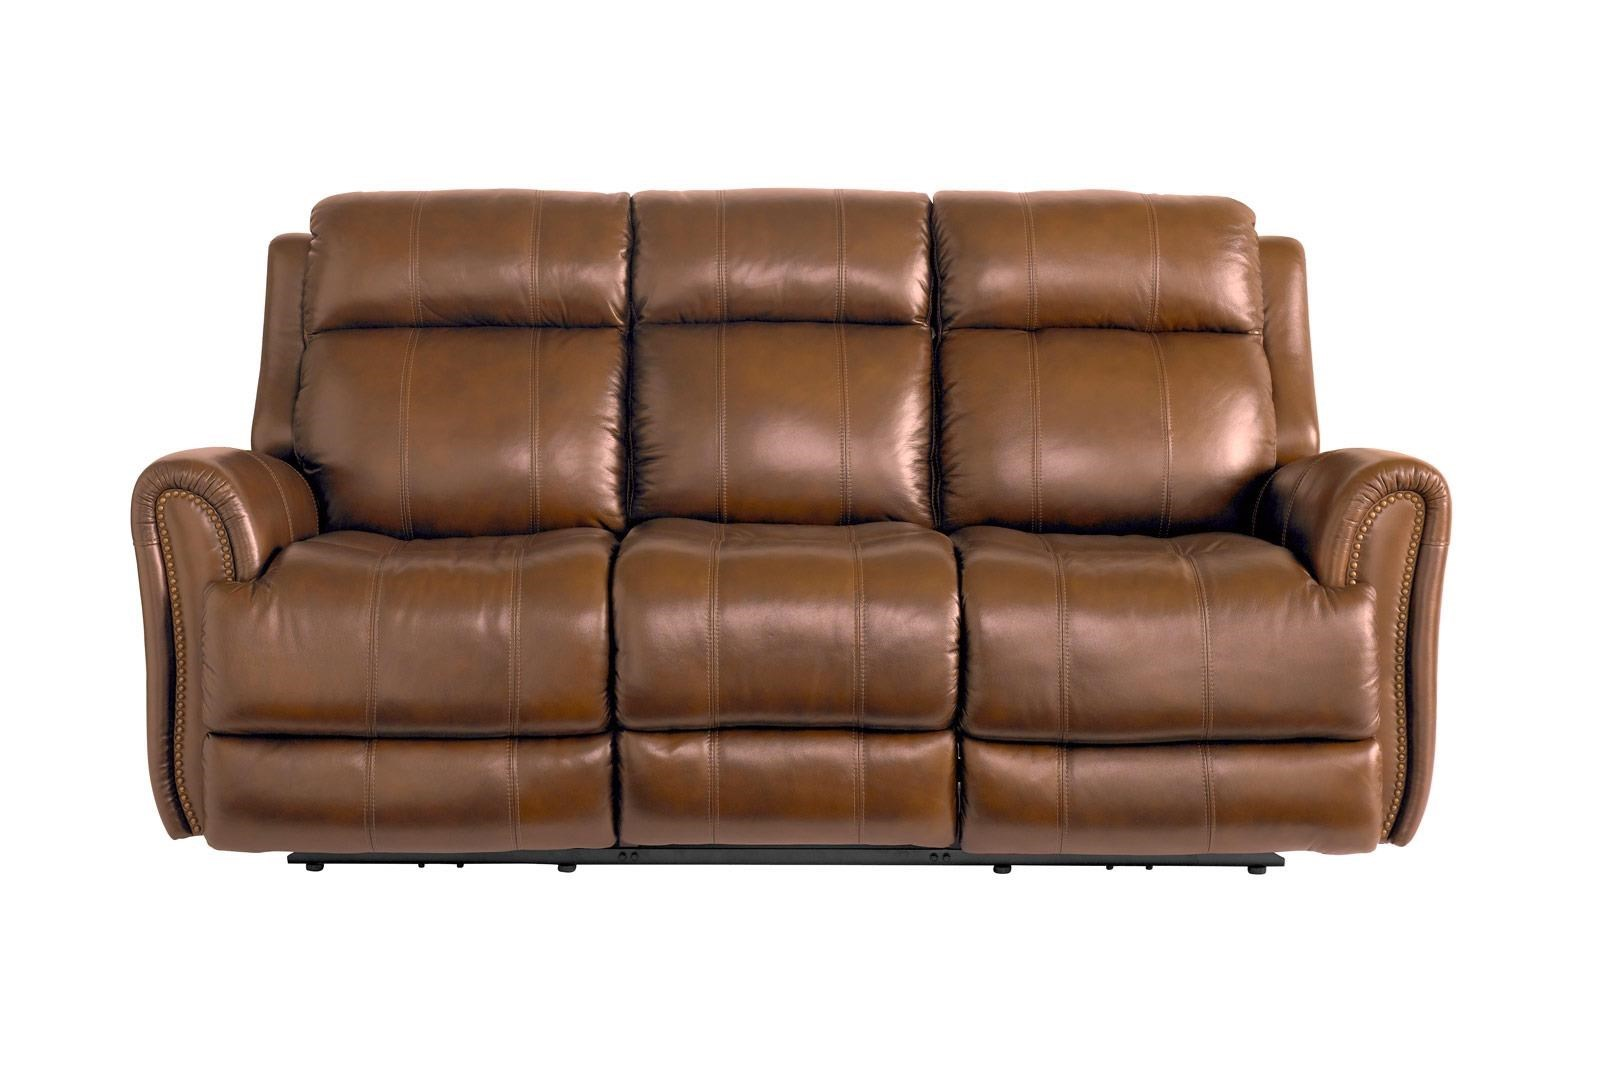 Sofa With Recliner Marquee Umber Leather Power Reclining Sofa With Power Headrest By Bassett At Great American Home Store